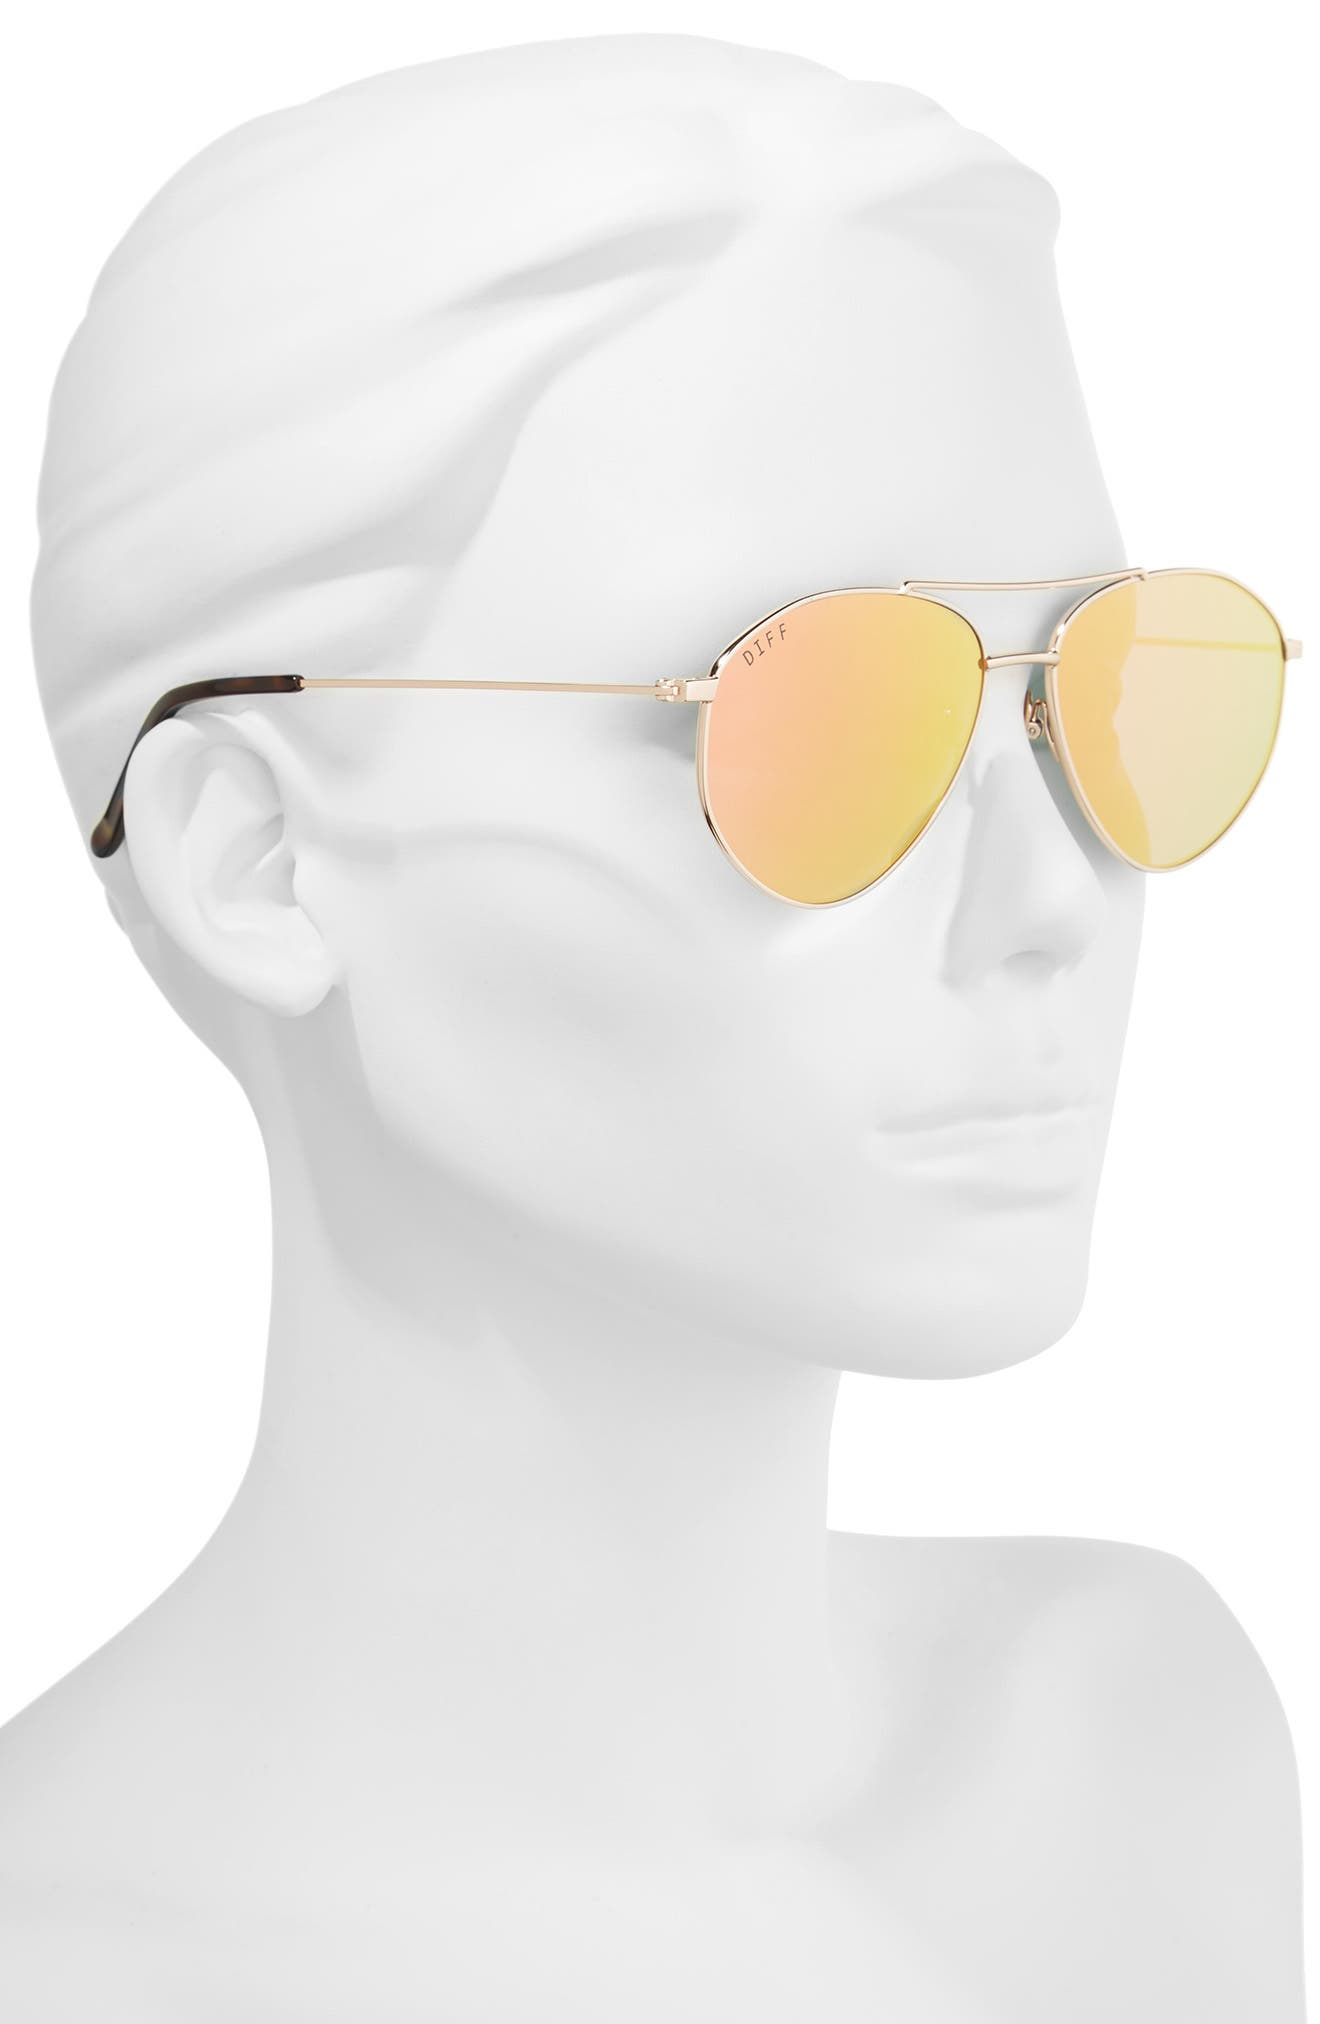 Scout 53mm Aviator Sunglasses,                             Alternate thumbnail 2, color,                             Gold/ Pink